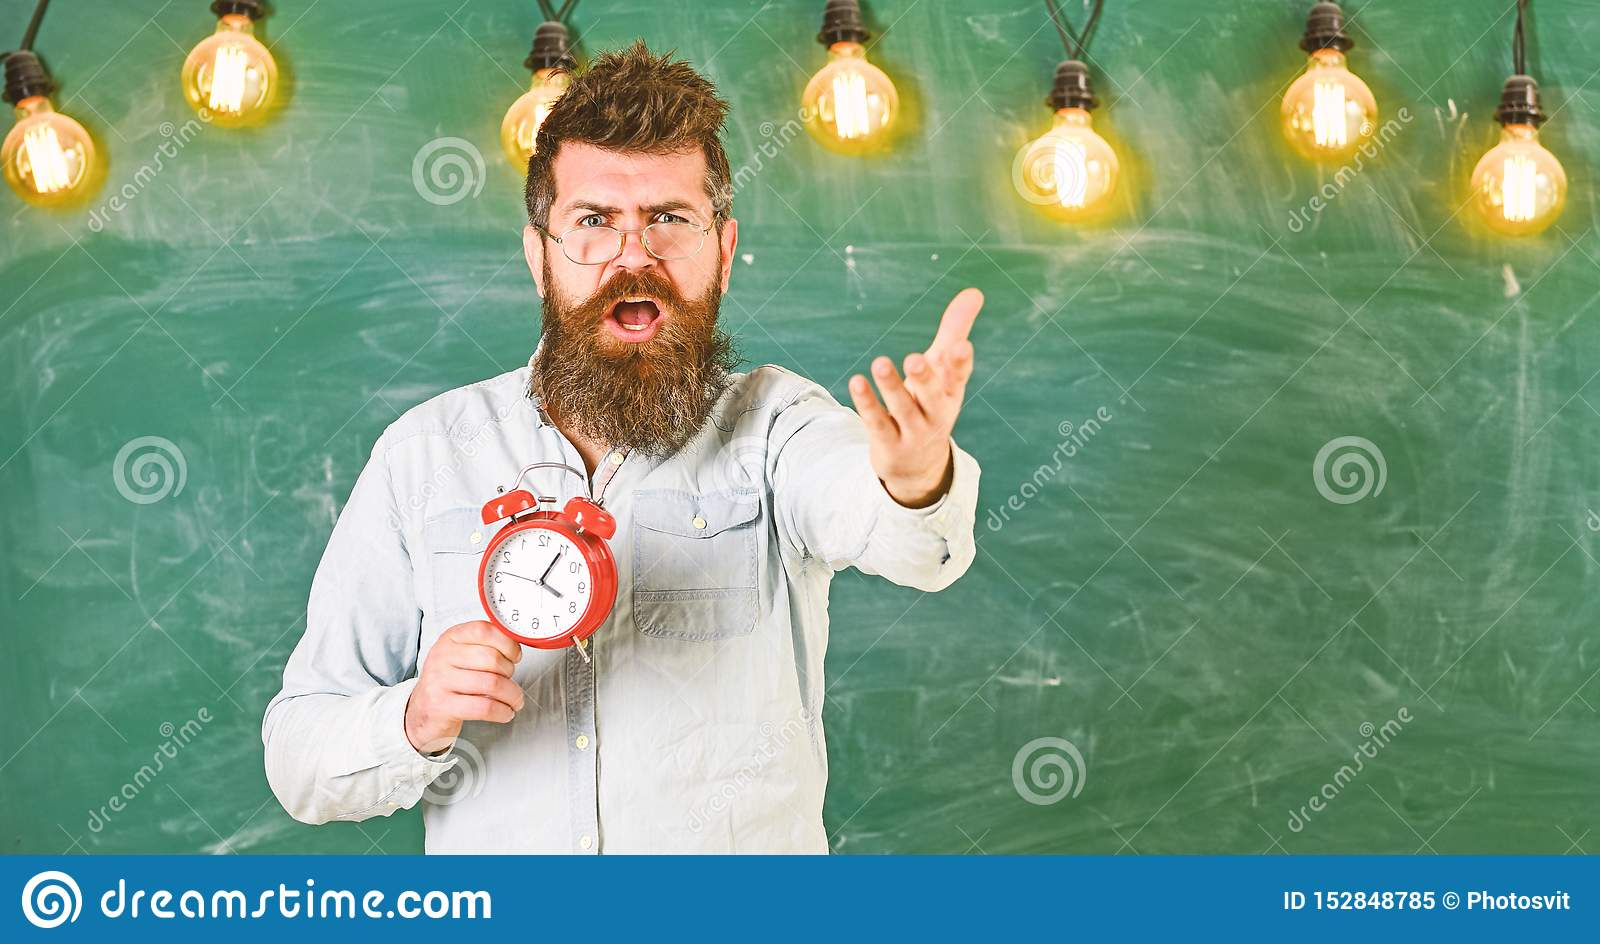 Schedule and regime concept. Bearded hipster holds clock, chalkboard on background, copy space. Man with beard on